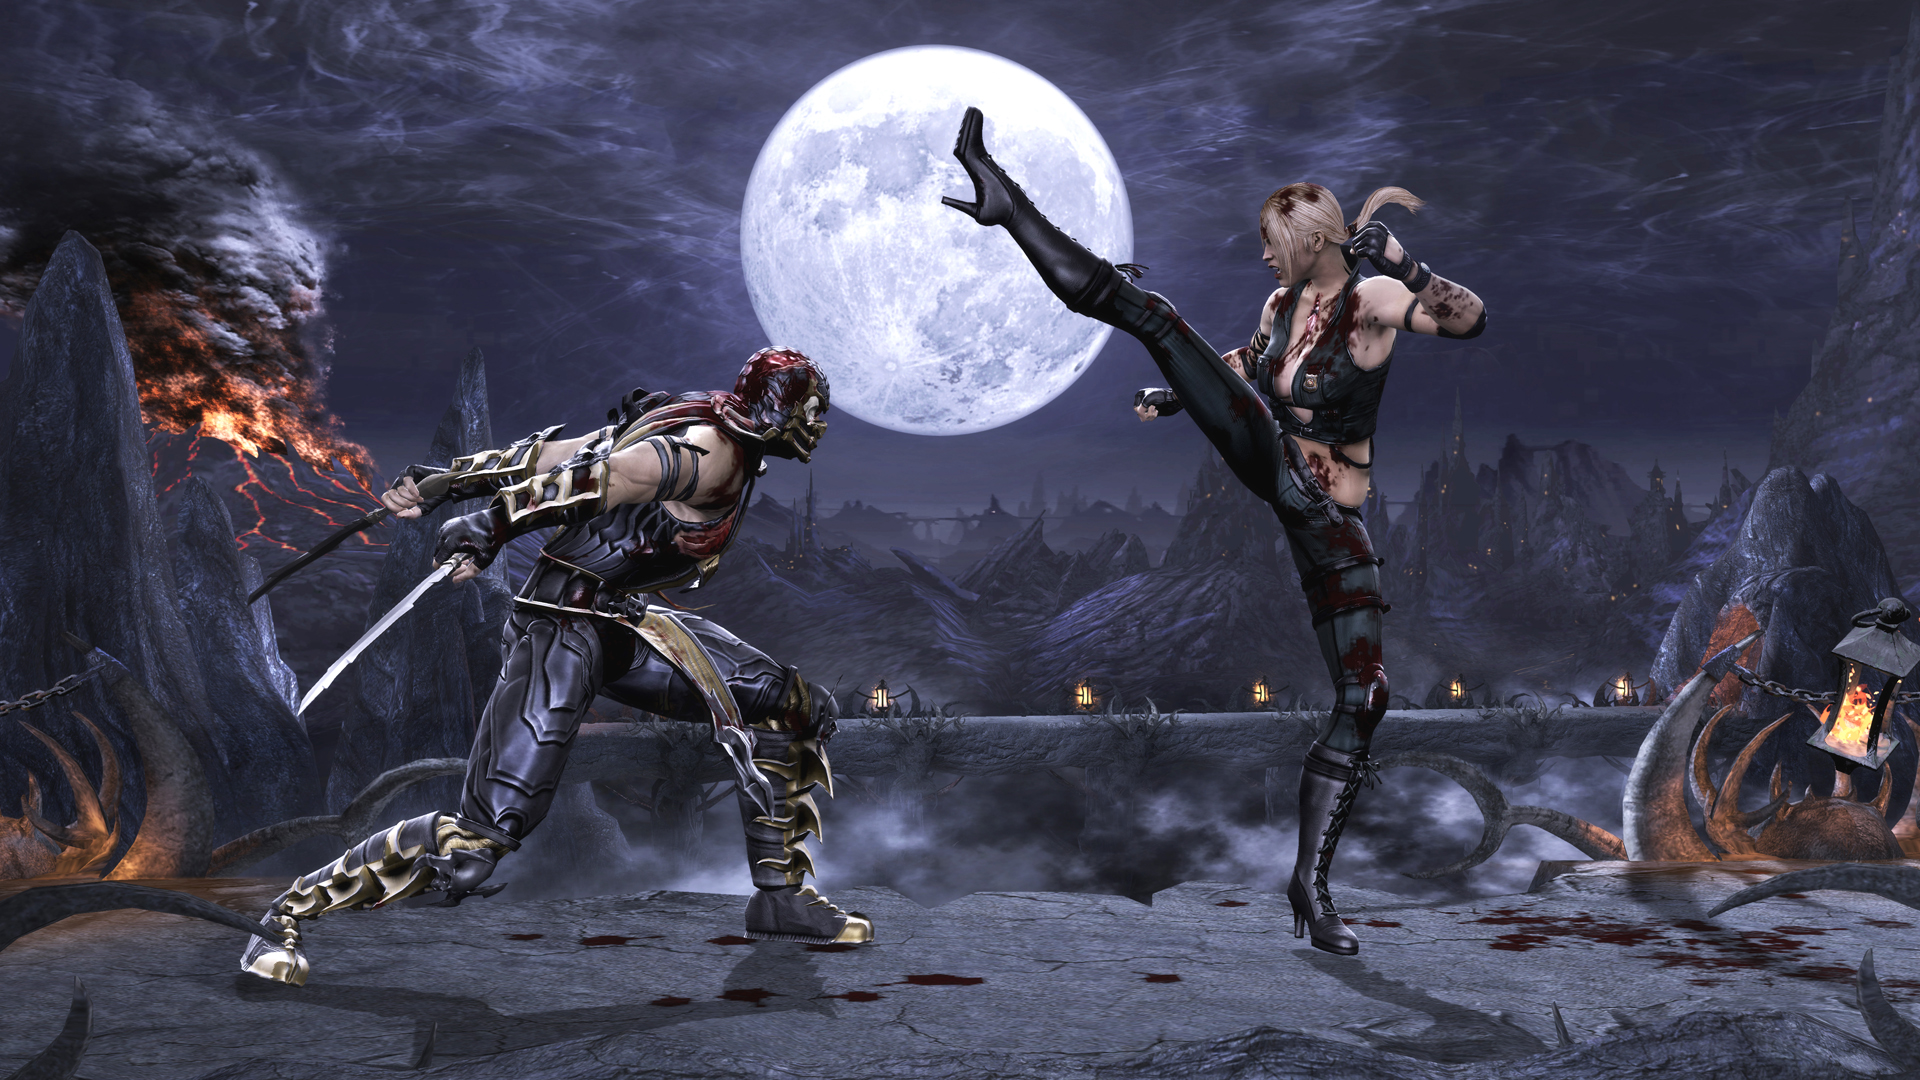 Mortal_Kombat_2011_Sonya_Blade_vs_Scorpion